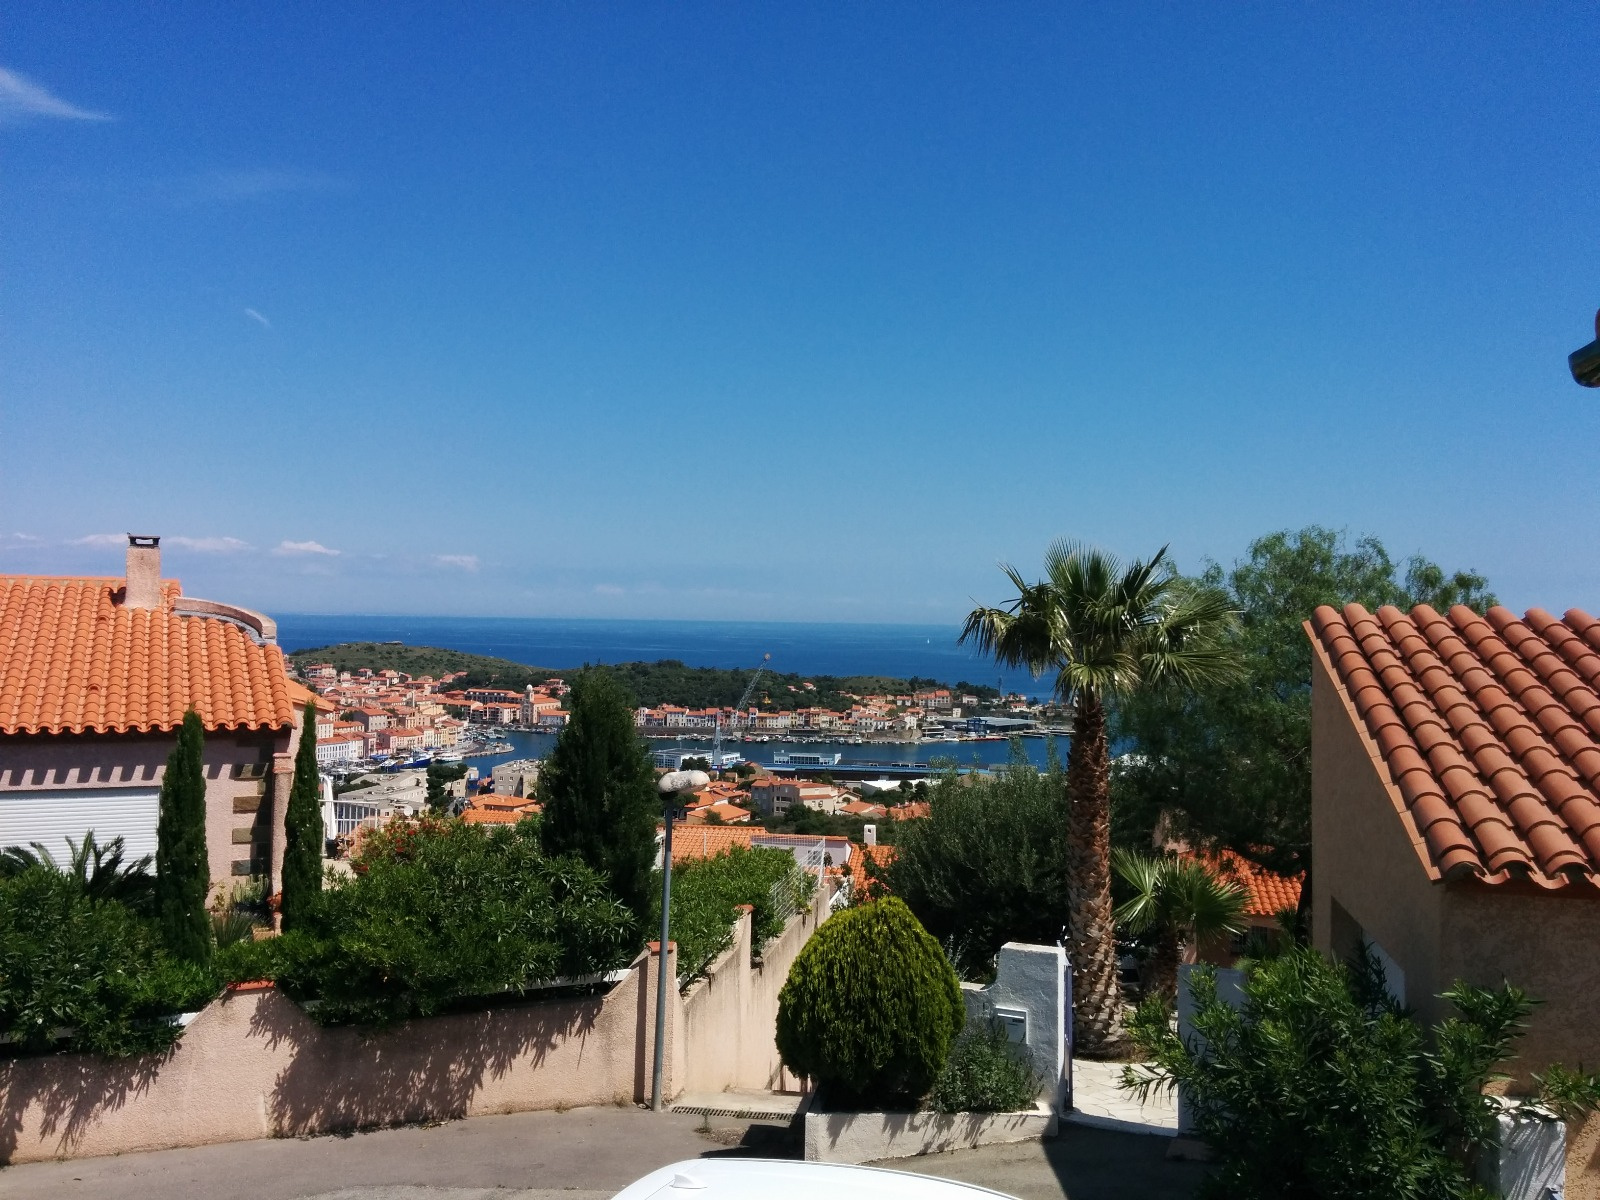 Immobilier port vendres et collioure achat vente - Maison de retraite la castellane port vendres ...